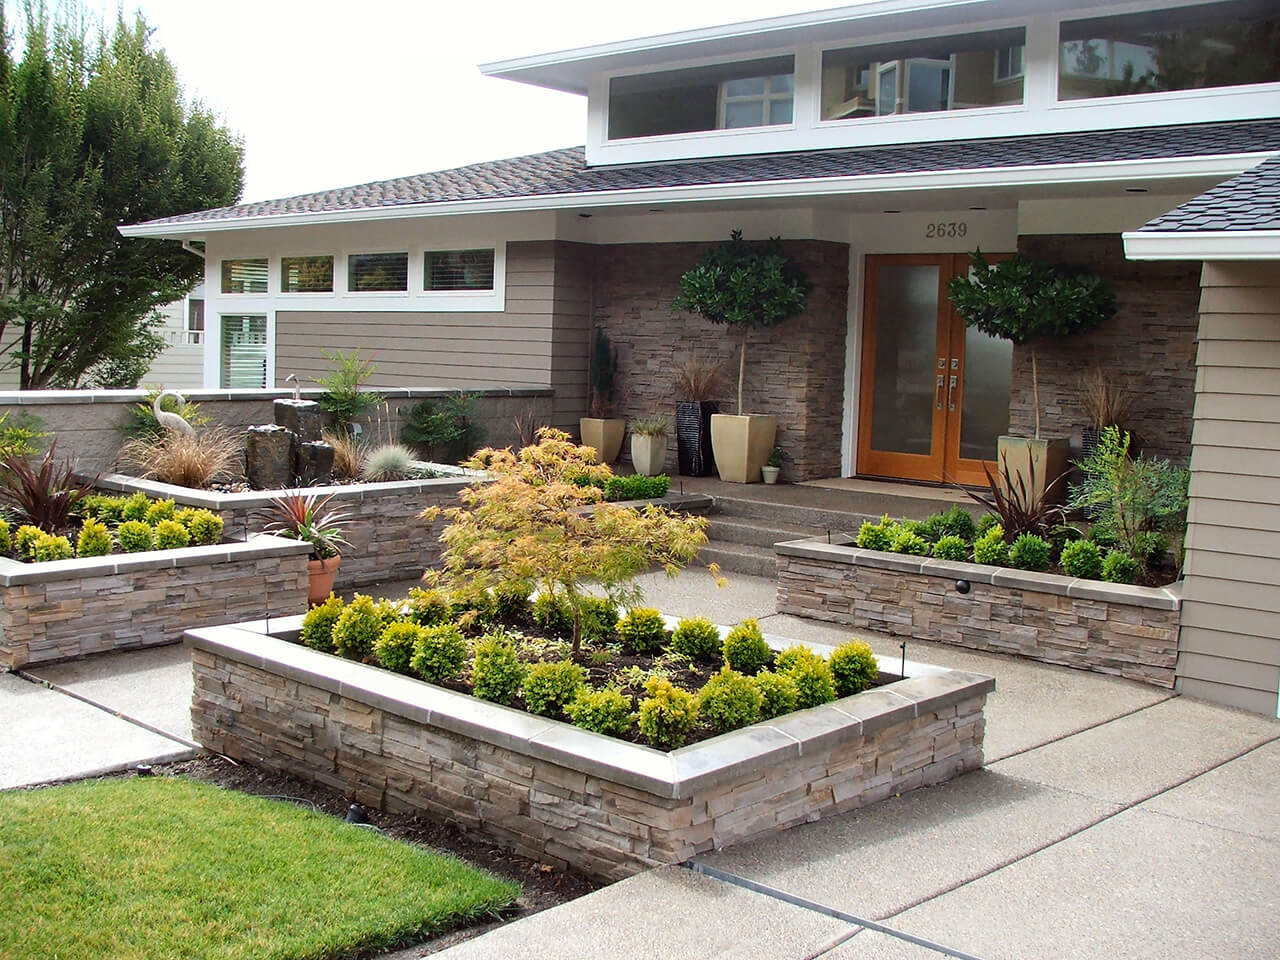 20 brilliant front garden landscaping ideas style motivation for Front garden design ideas